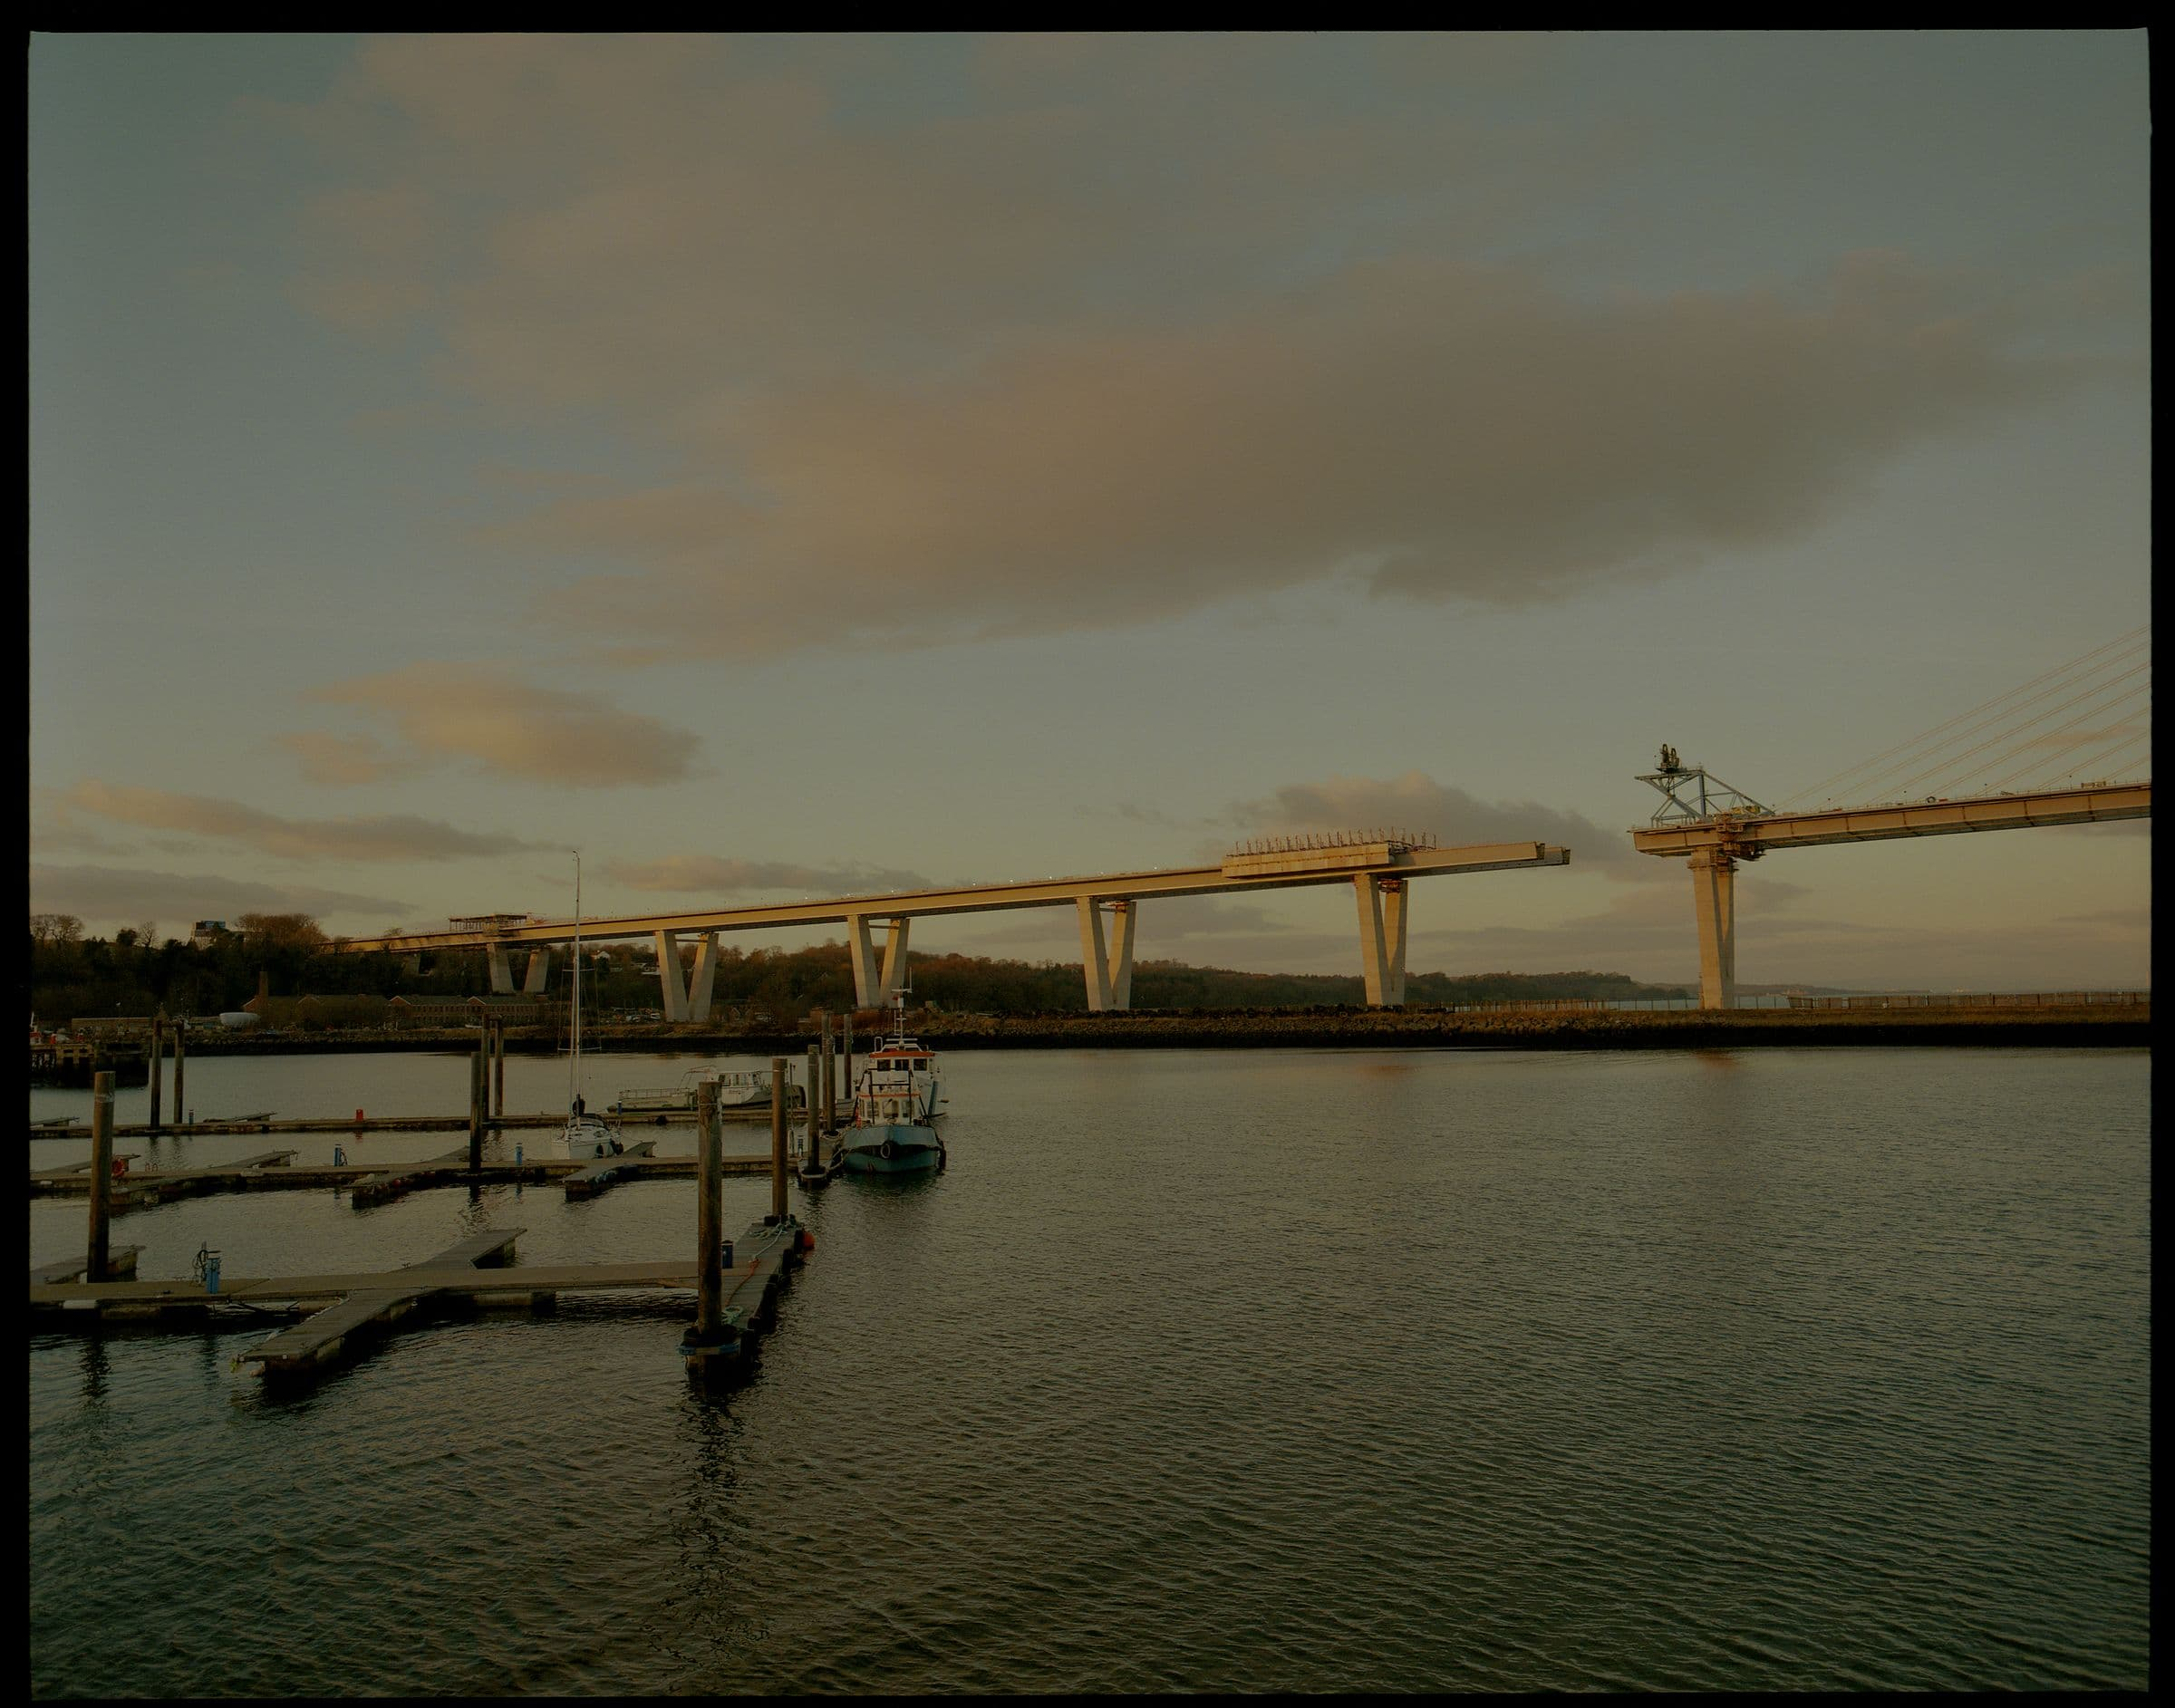 The Queensferry Crossing bridge being built, from Port Edgar during sunrise